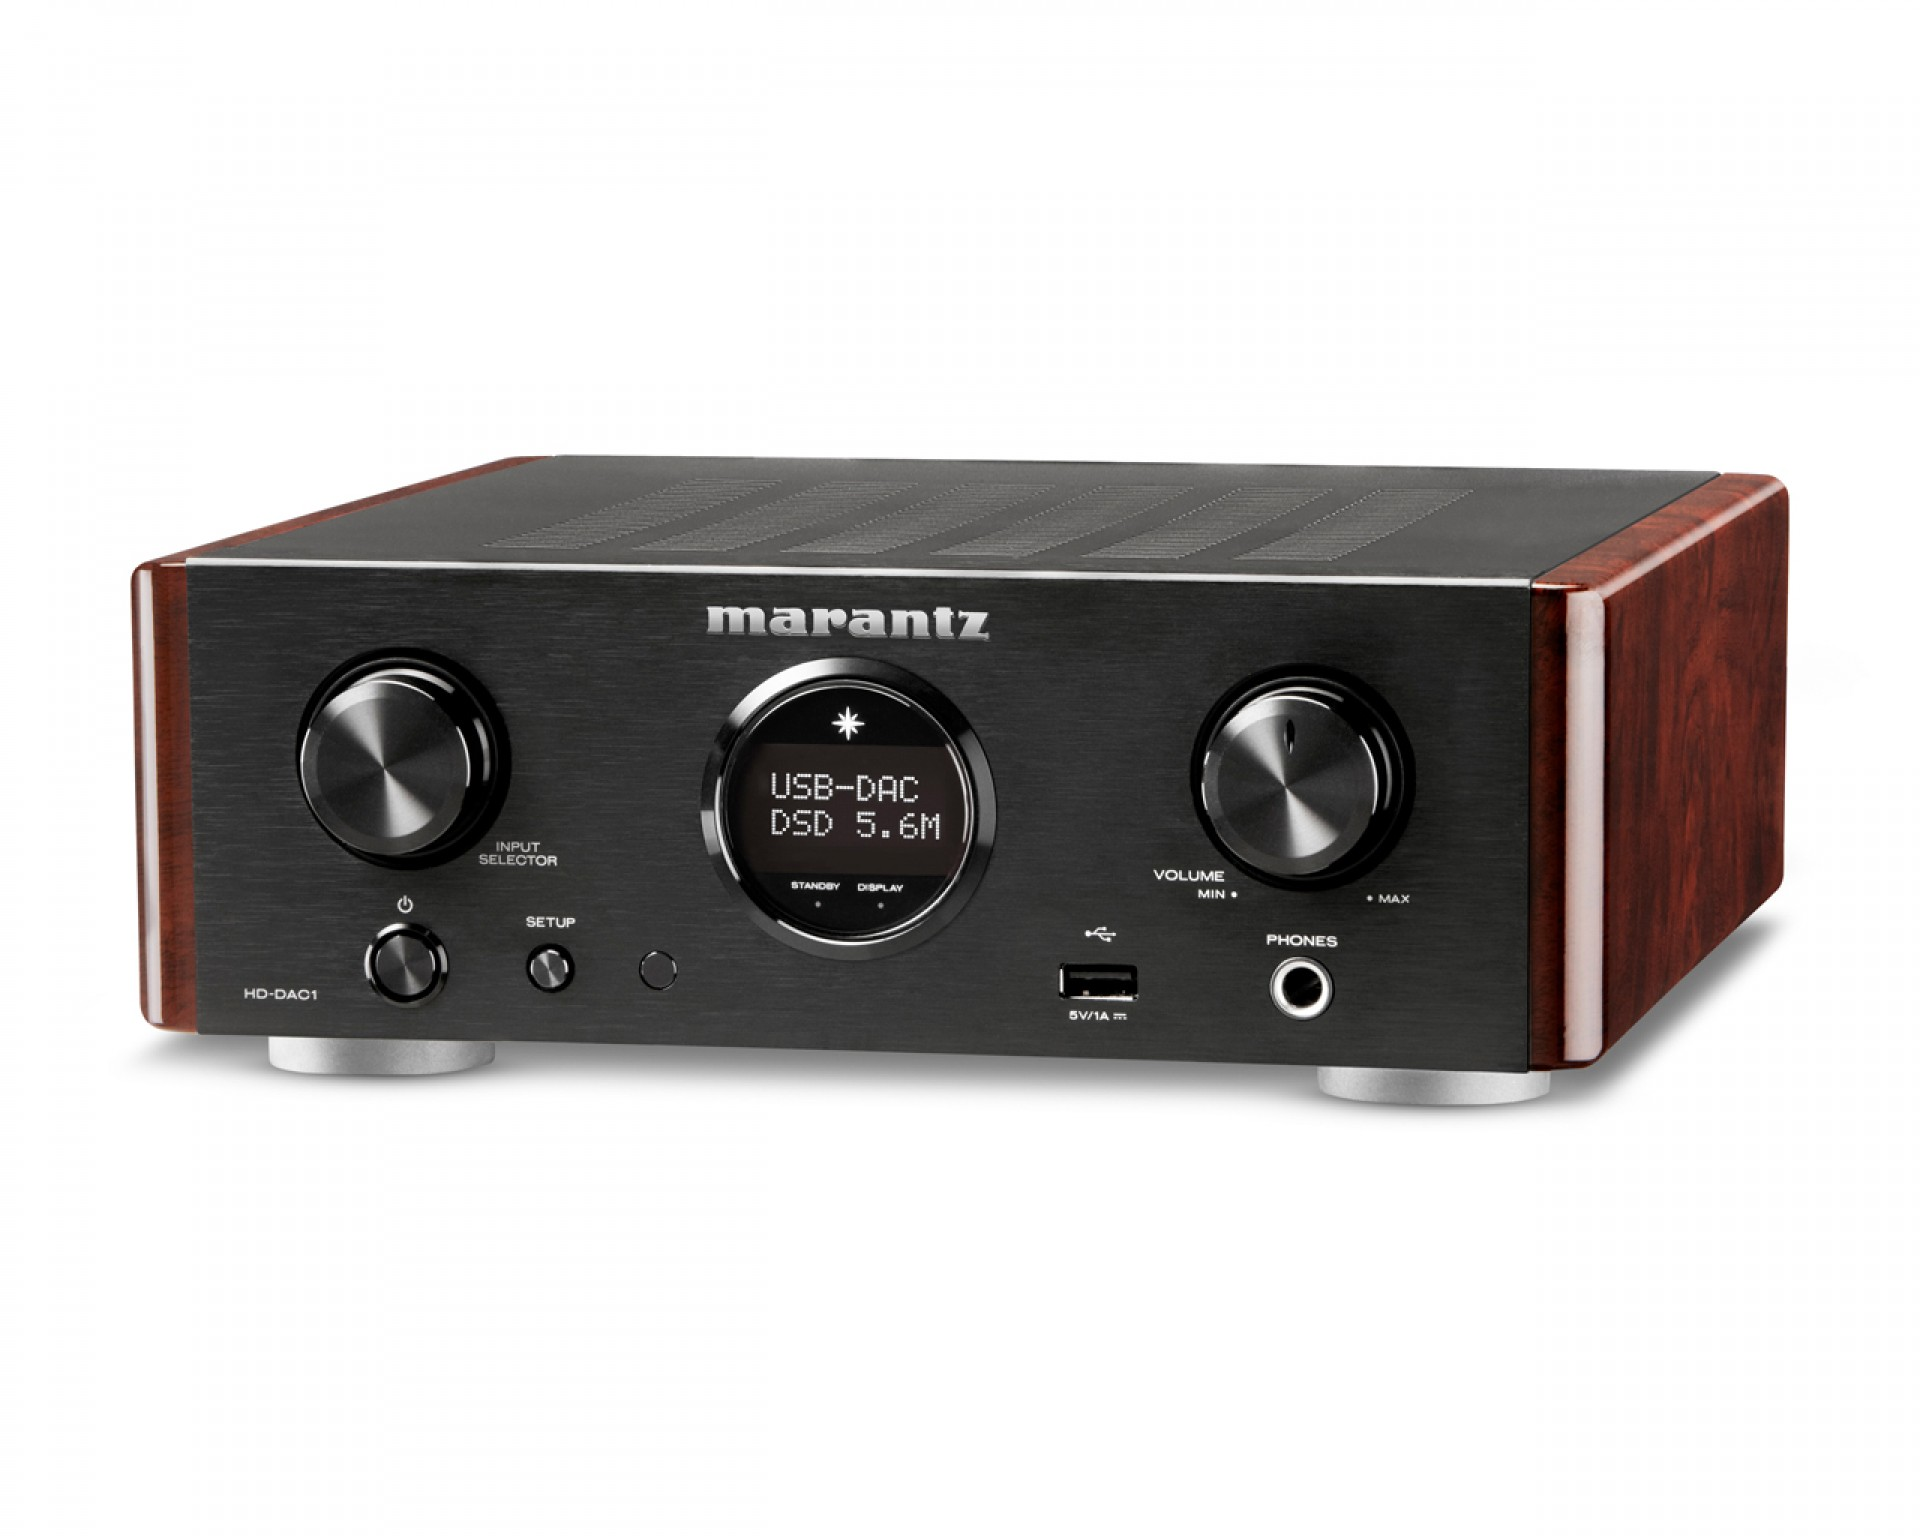 MARANTZ HD DAC1 Black